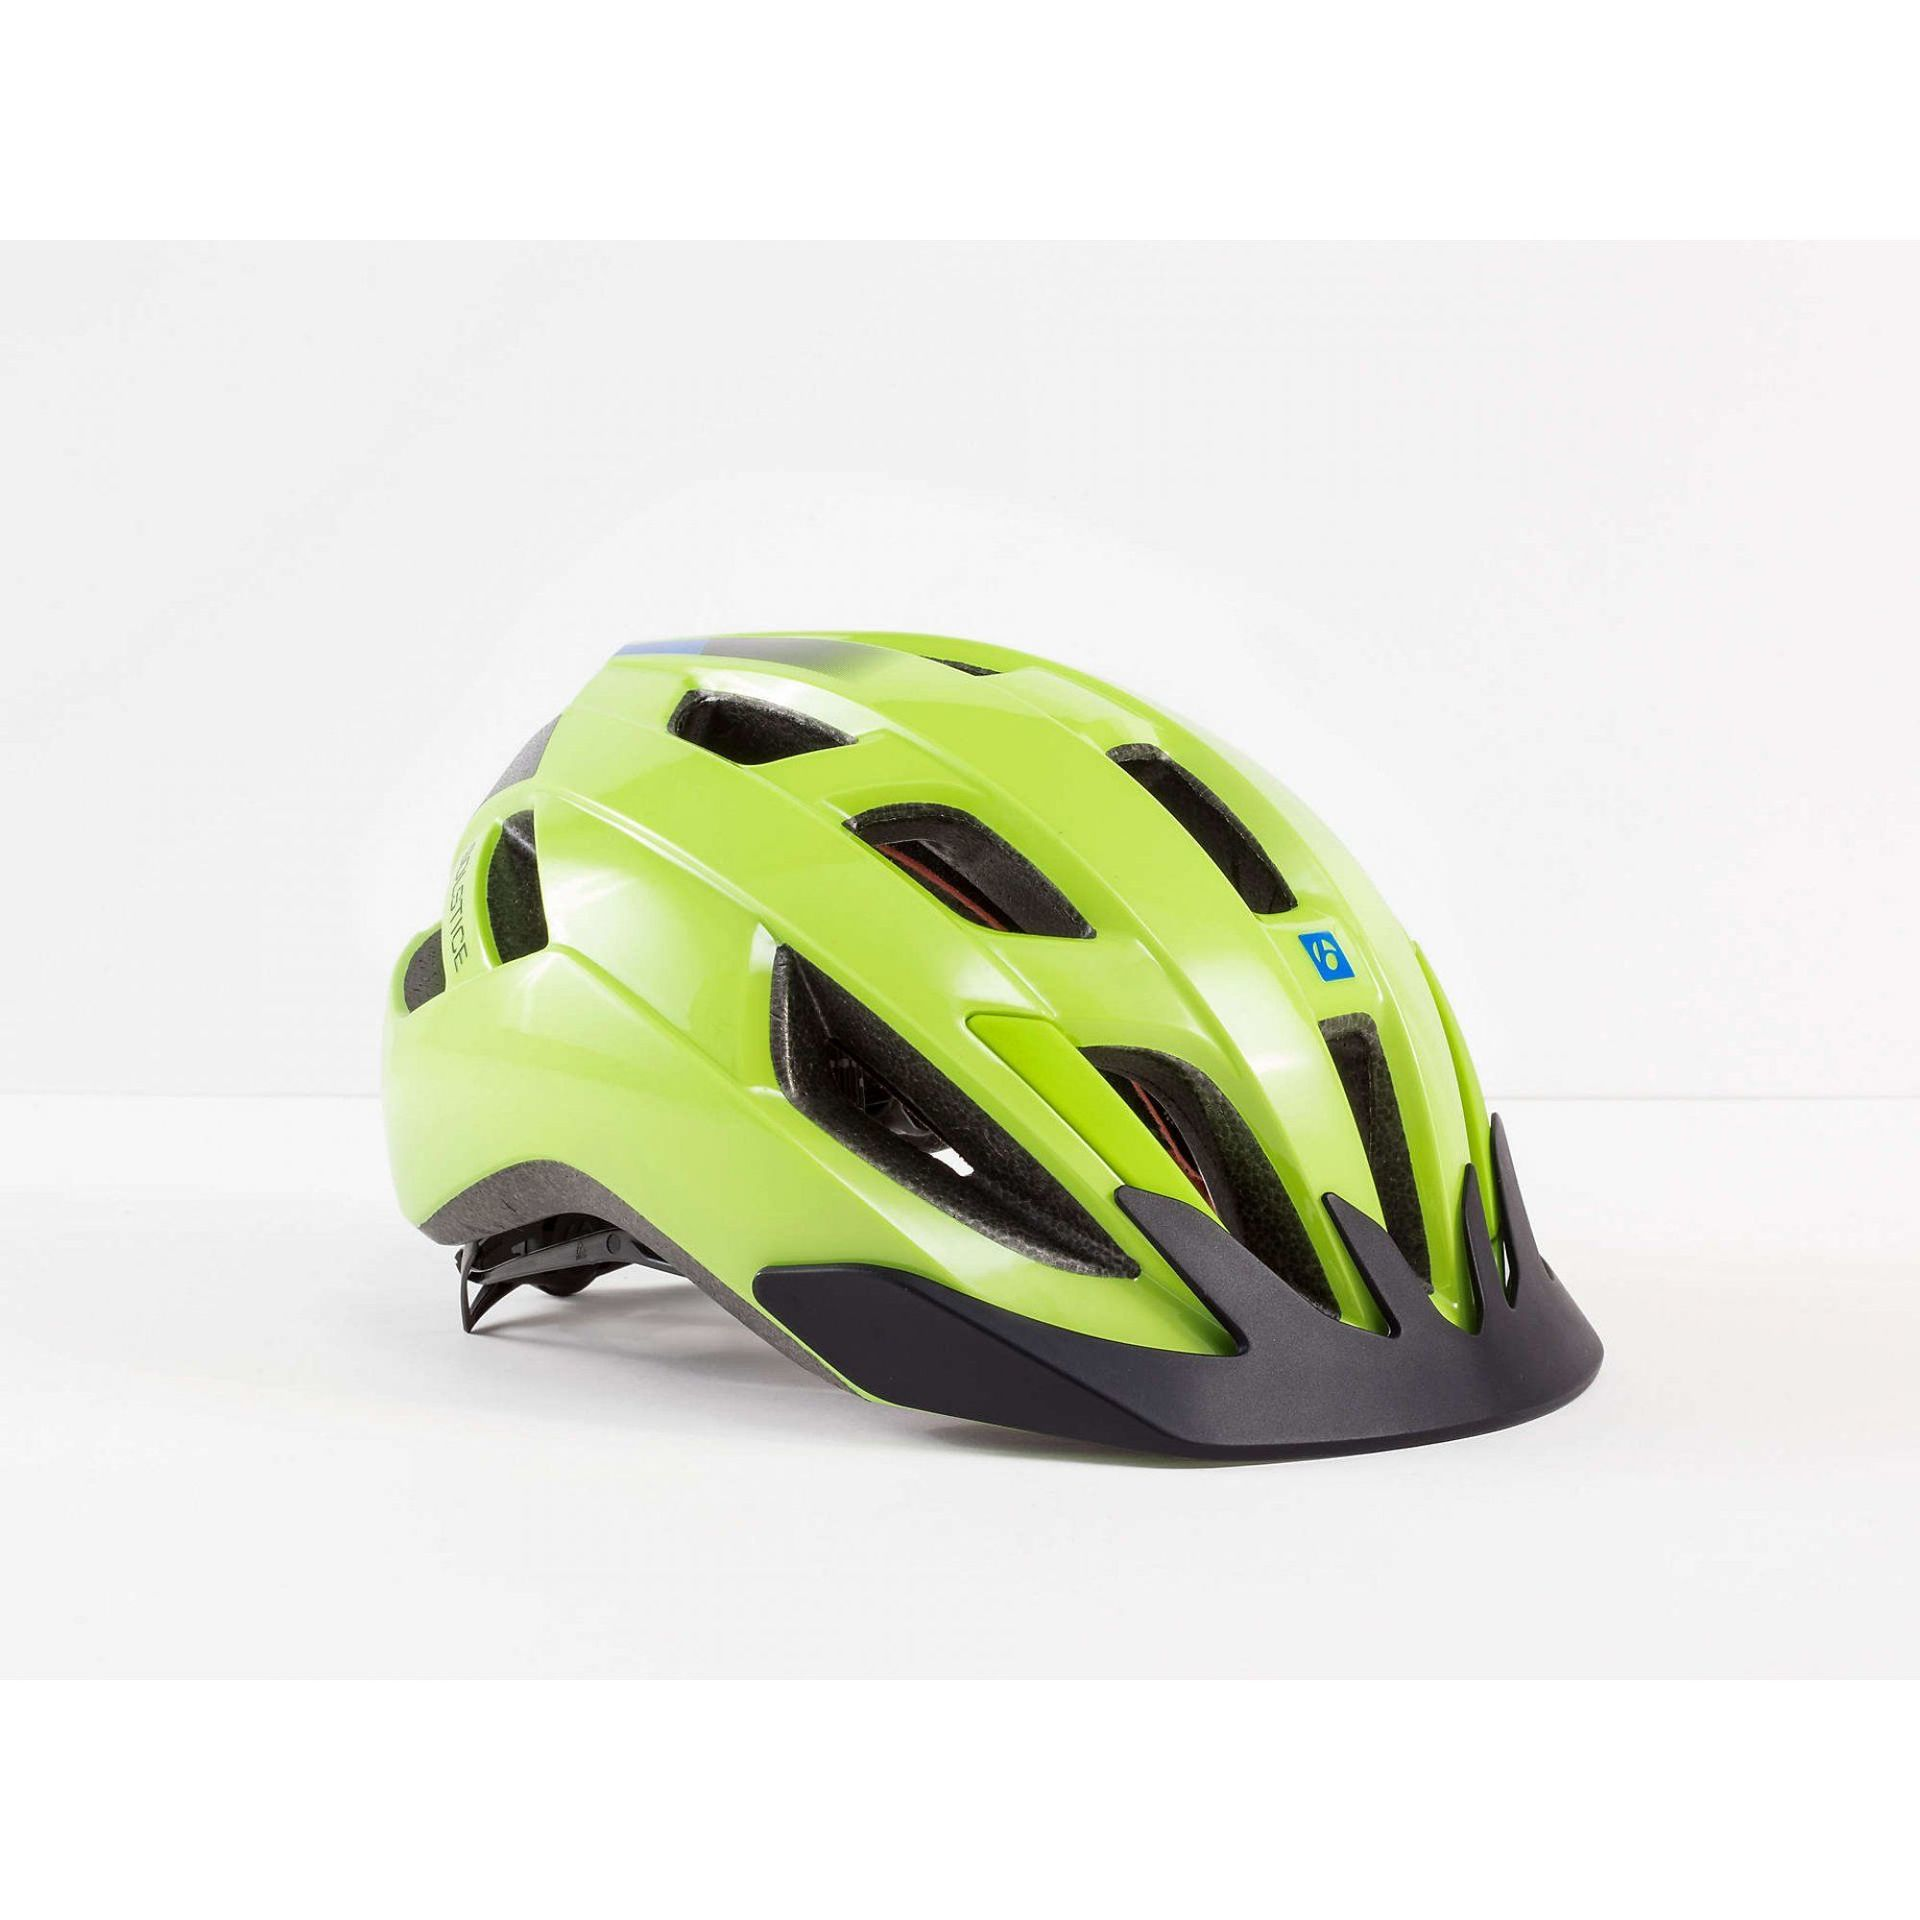 KASK ROWEROWY BONTRAGER SOLSTICE YOUTH 571774